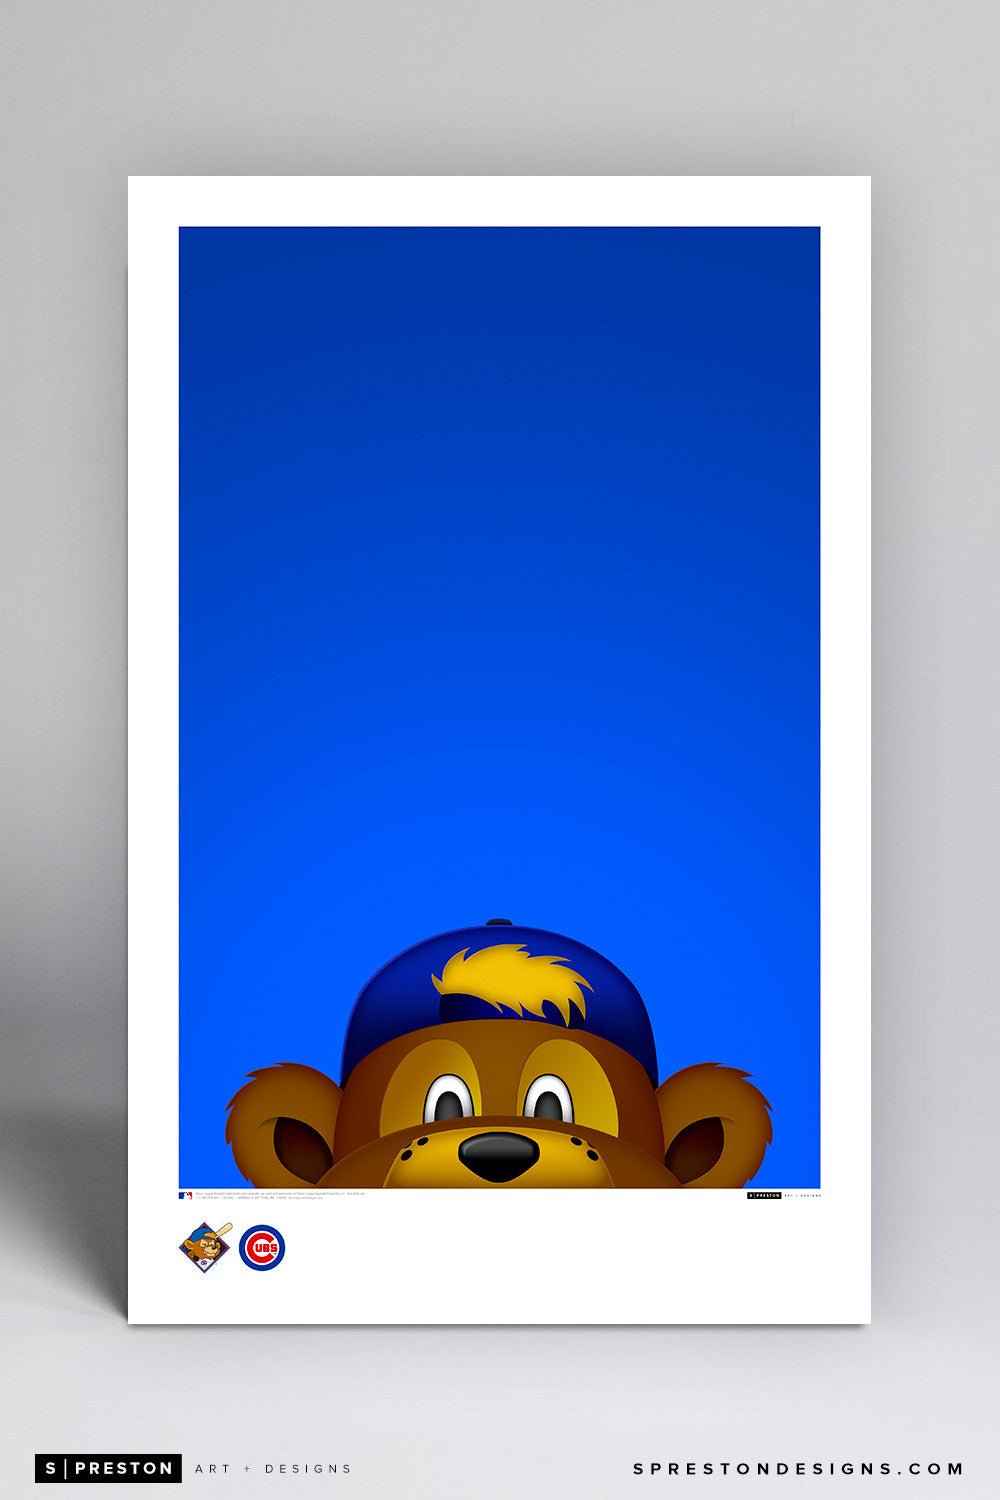 Minimalist Clark The Cub Poster Print Chicago Cubs - S Preston